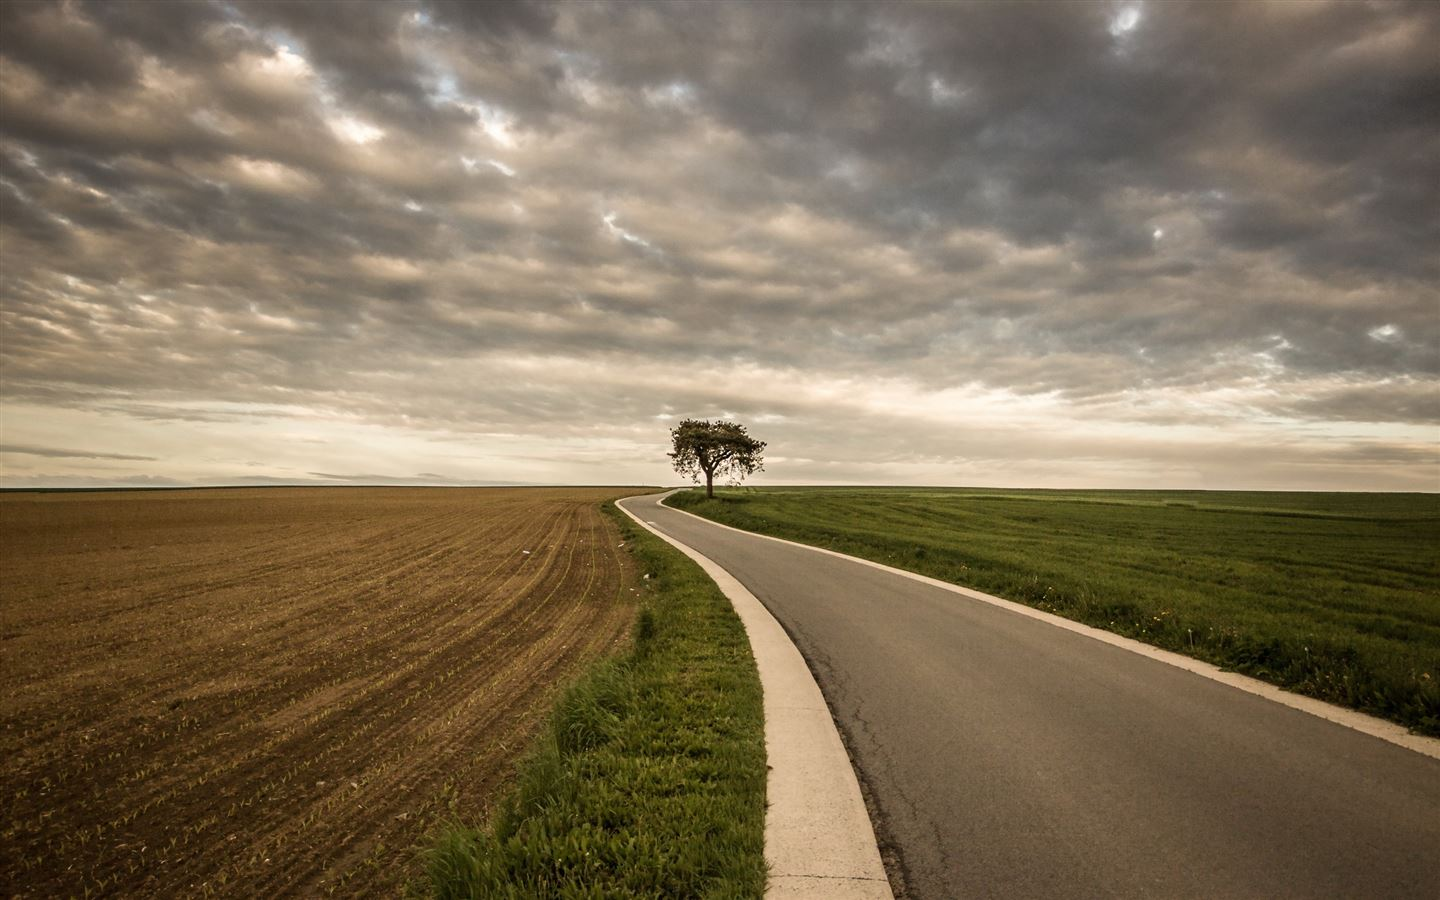 Roadside Tree Nature Mac Wallpaper Download | Free Mac ...